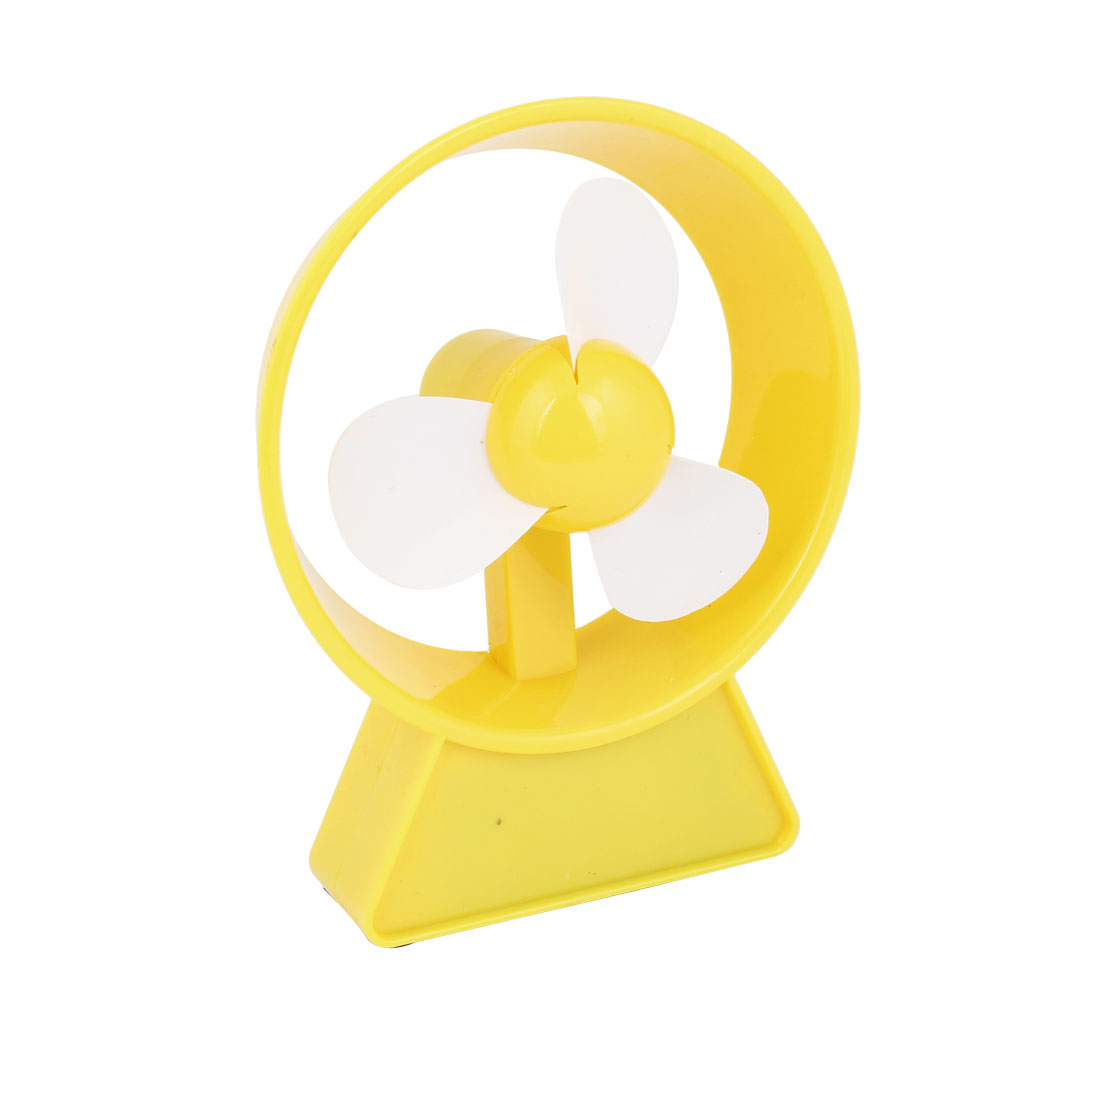 Round Clock Style Battery USB Power PC Laptop Cooler Mini Fan Yellow White